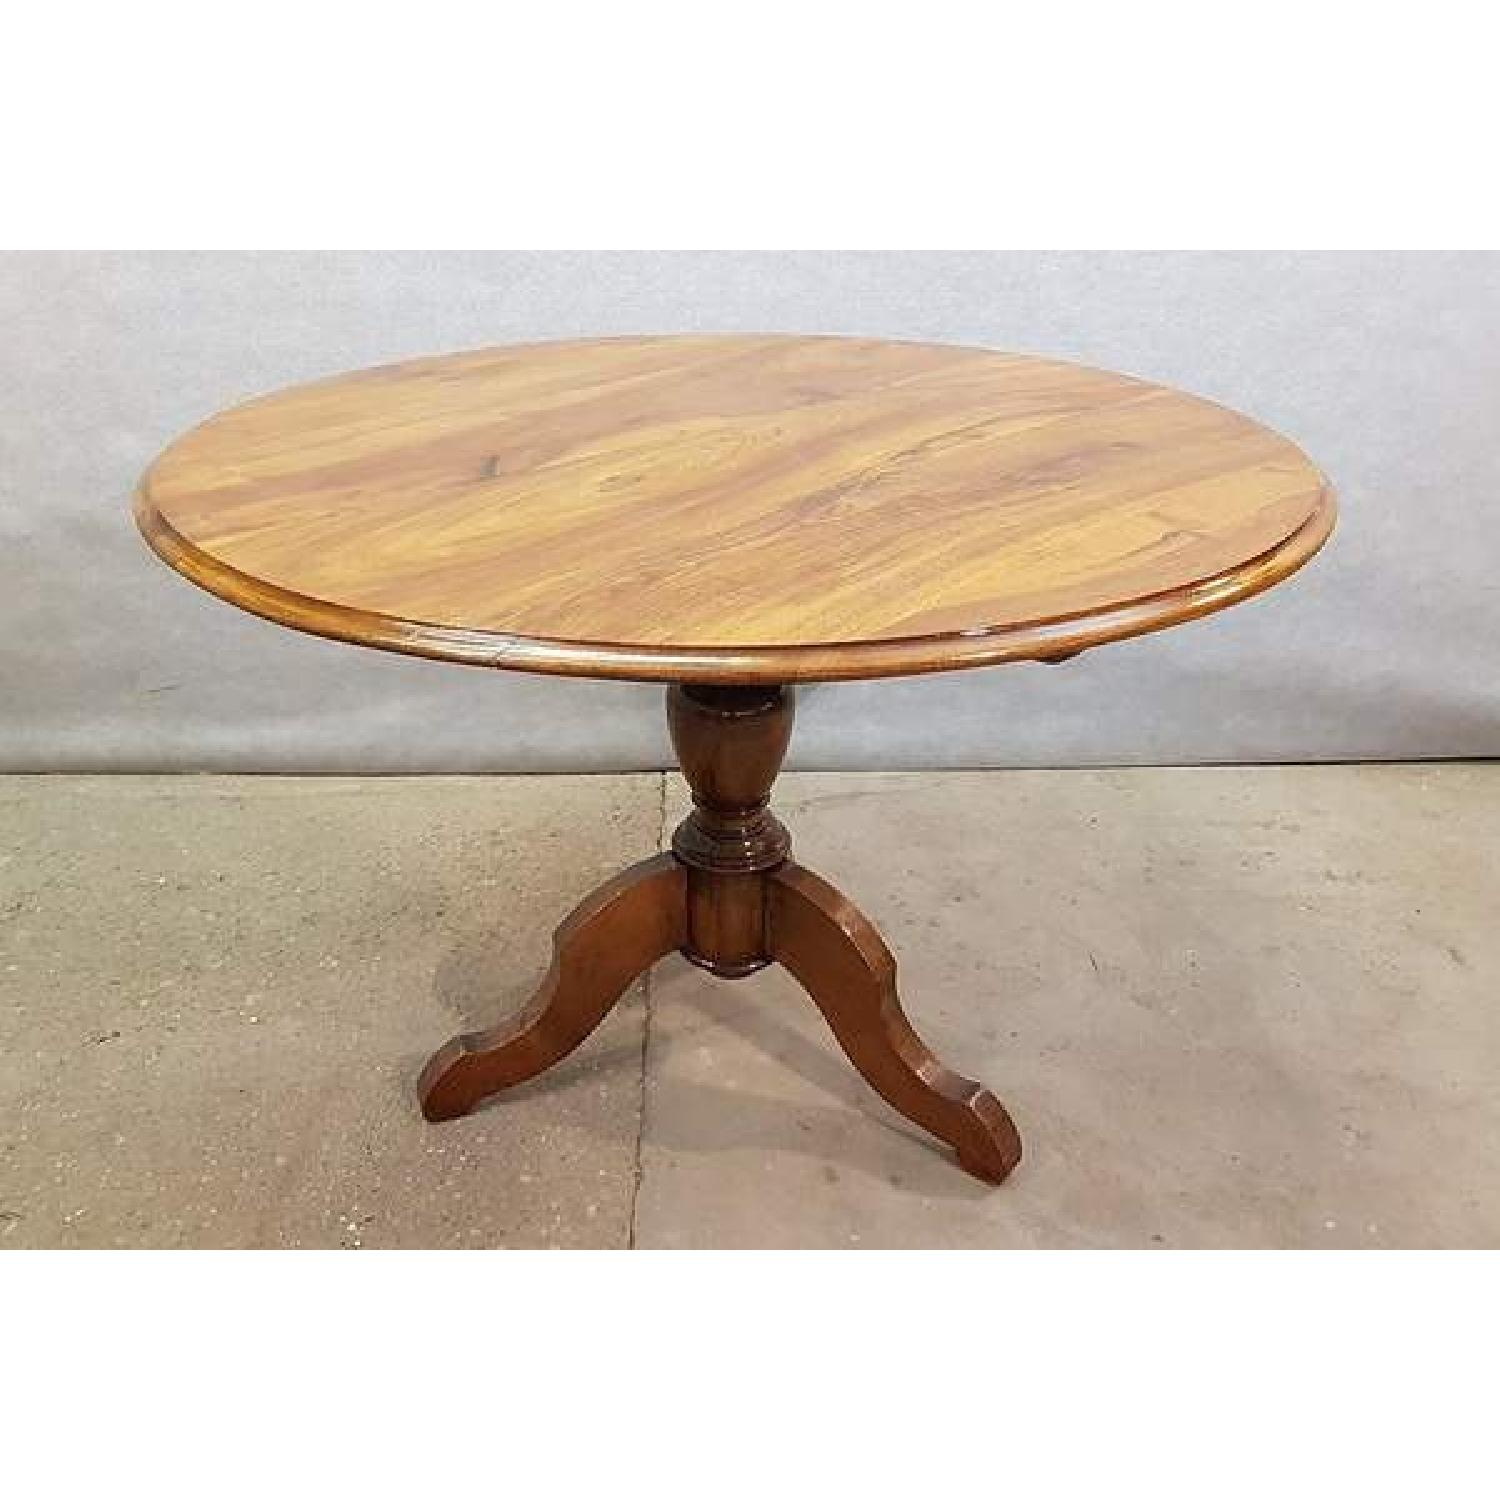 Antique French Walnut Round Tilt Top Occasional Side Table-2